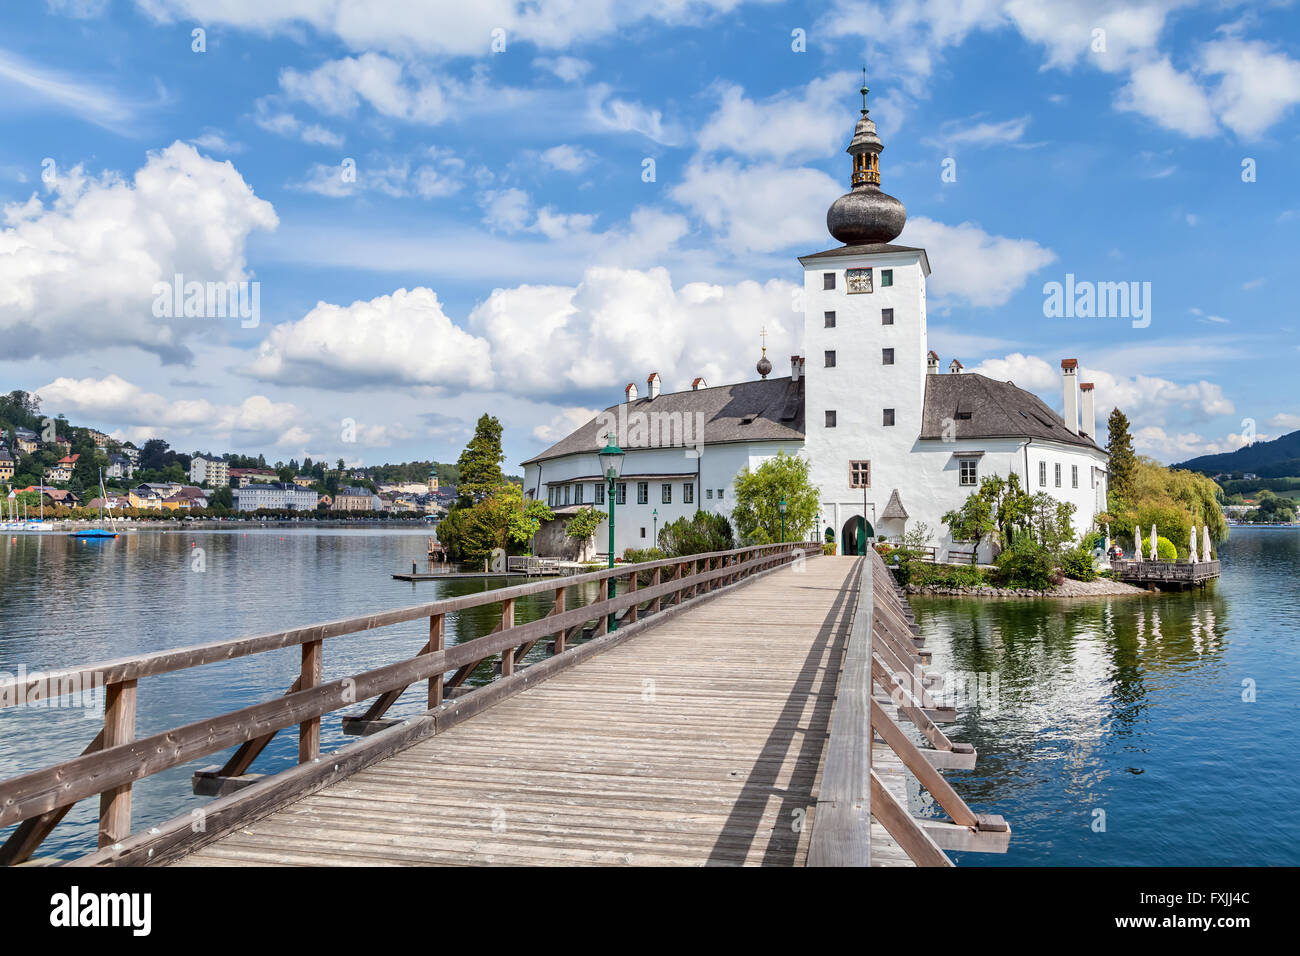 Schloss Ort on Traunsee lake near Gmunden, Austria - Stock Image